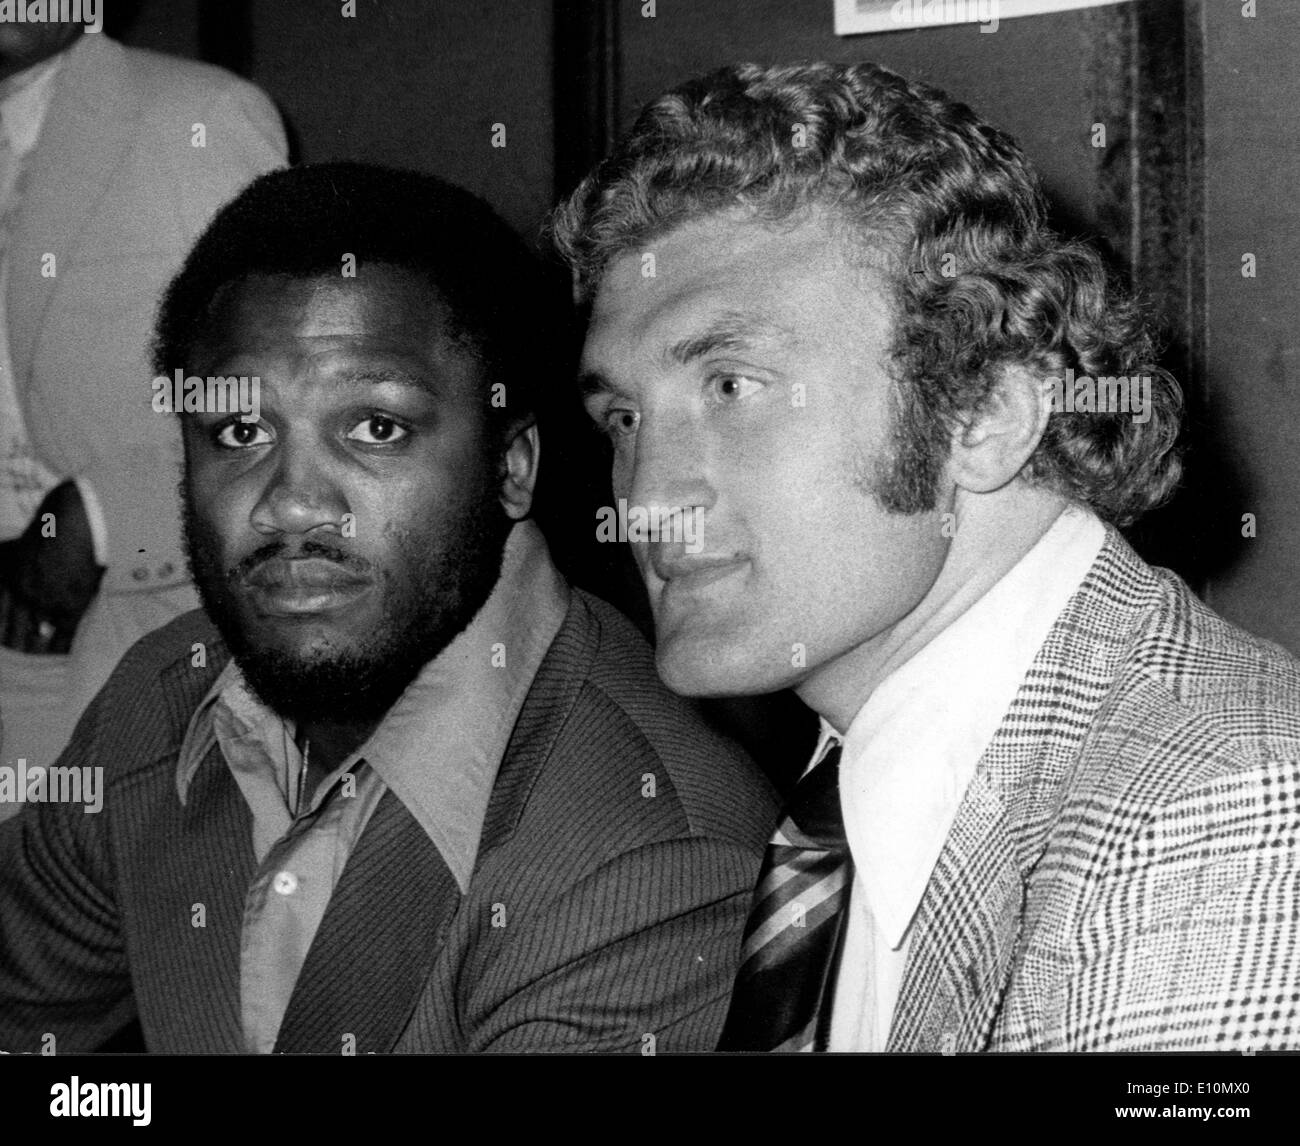 Boxers Joe Bugner and Joe Frazier attend press conference - Stock Image